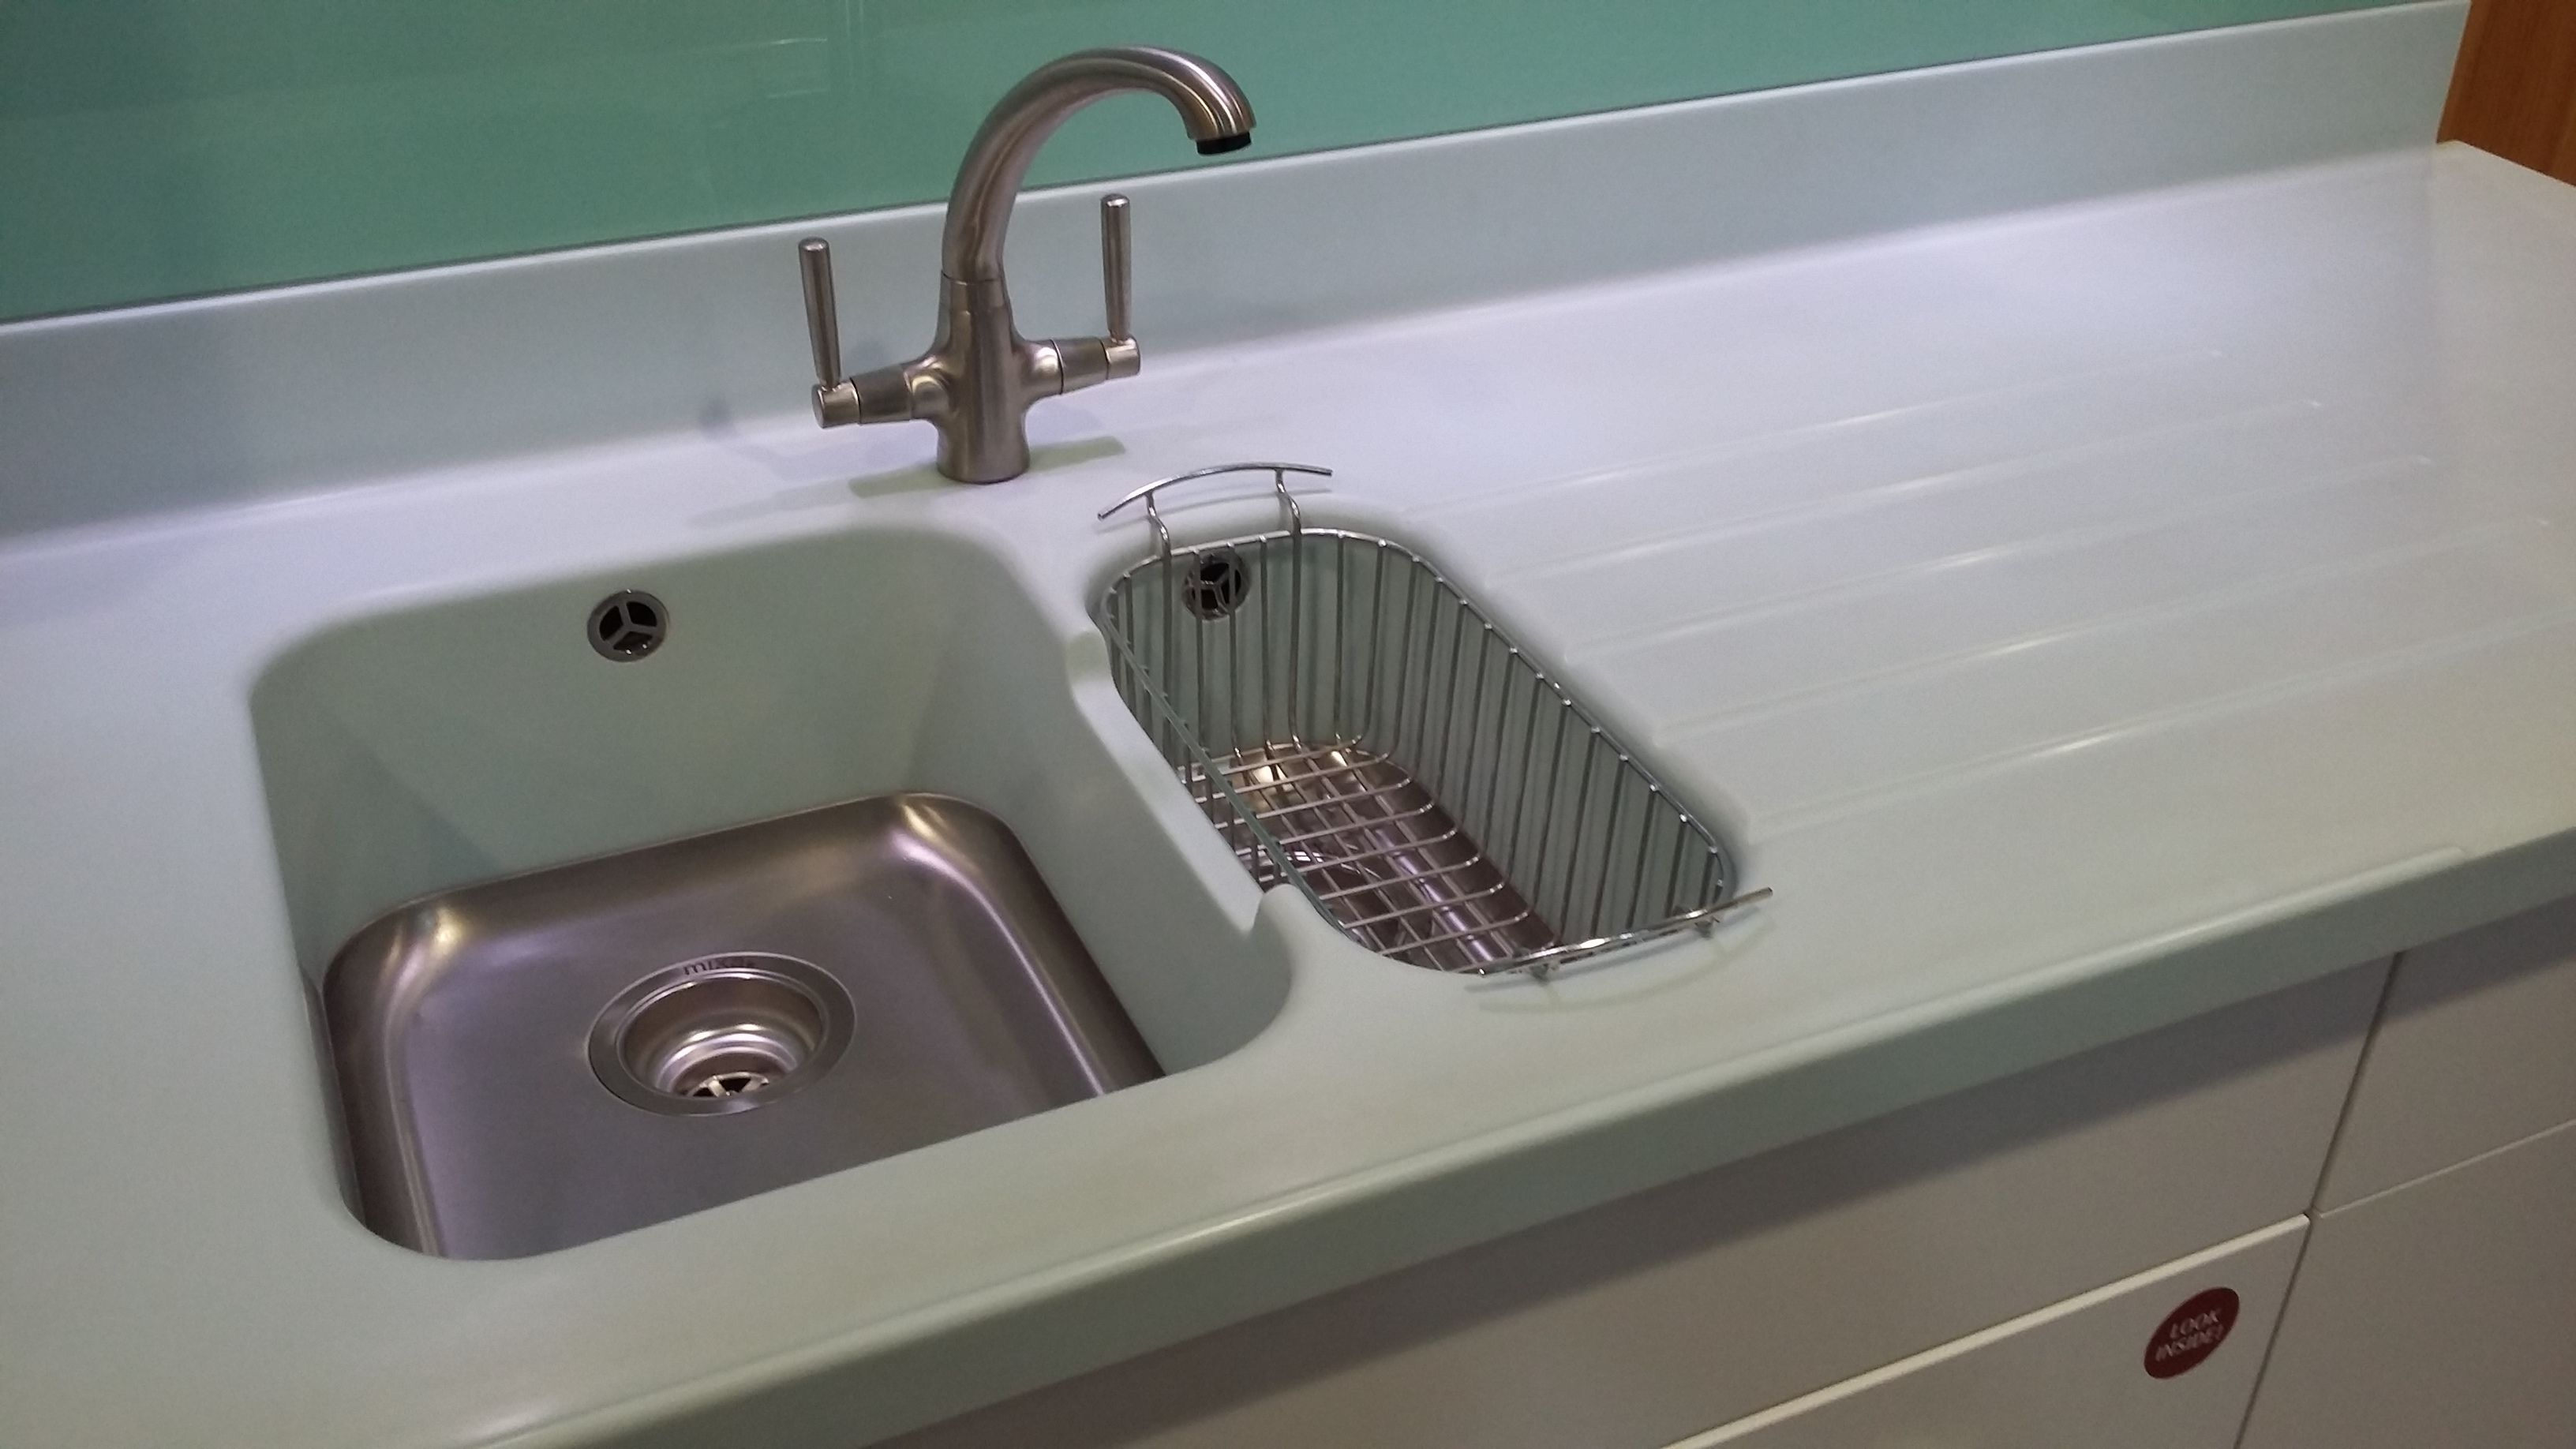 Corian tm moulded sink with drainer grooves and for Corian sink accessories